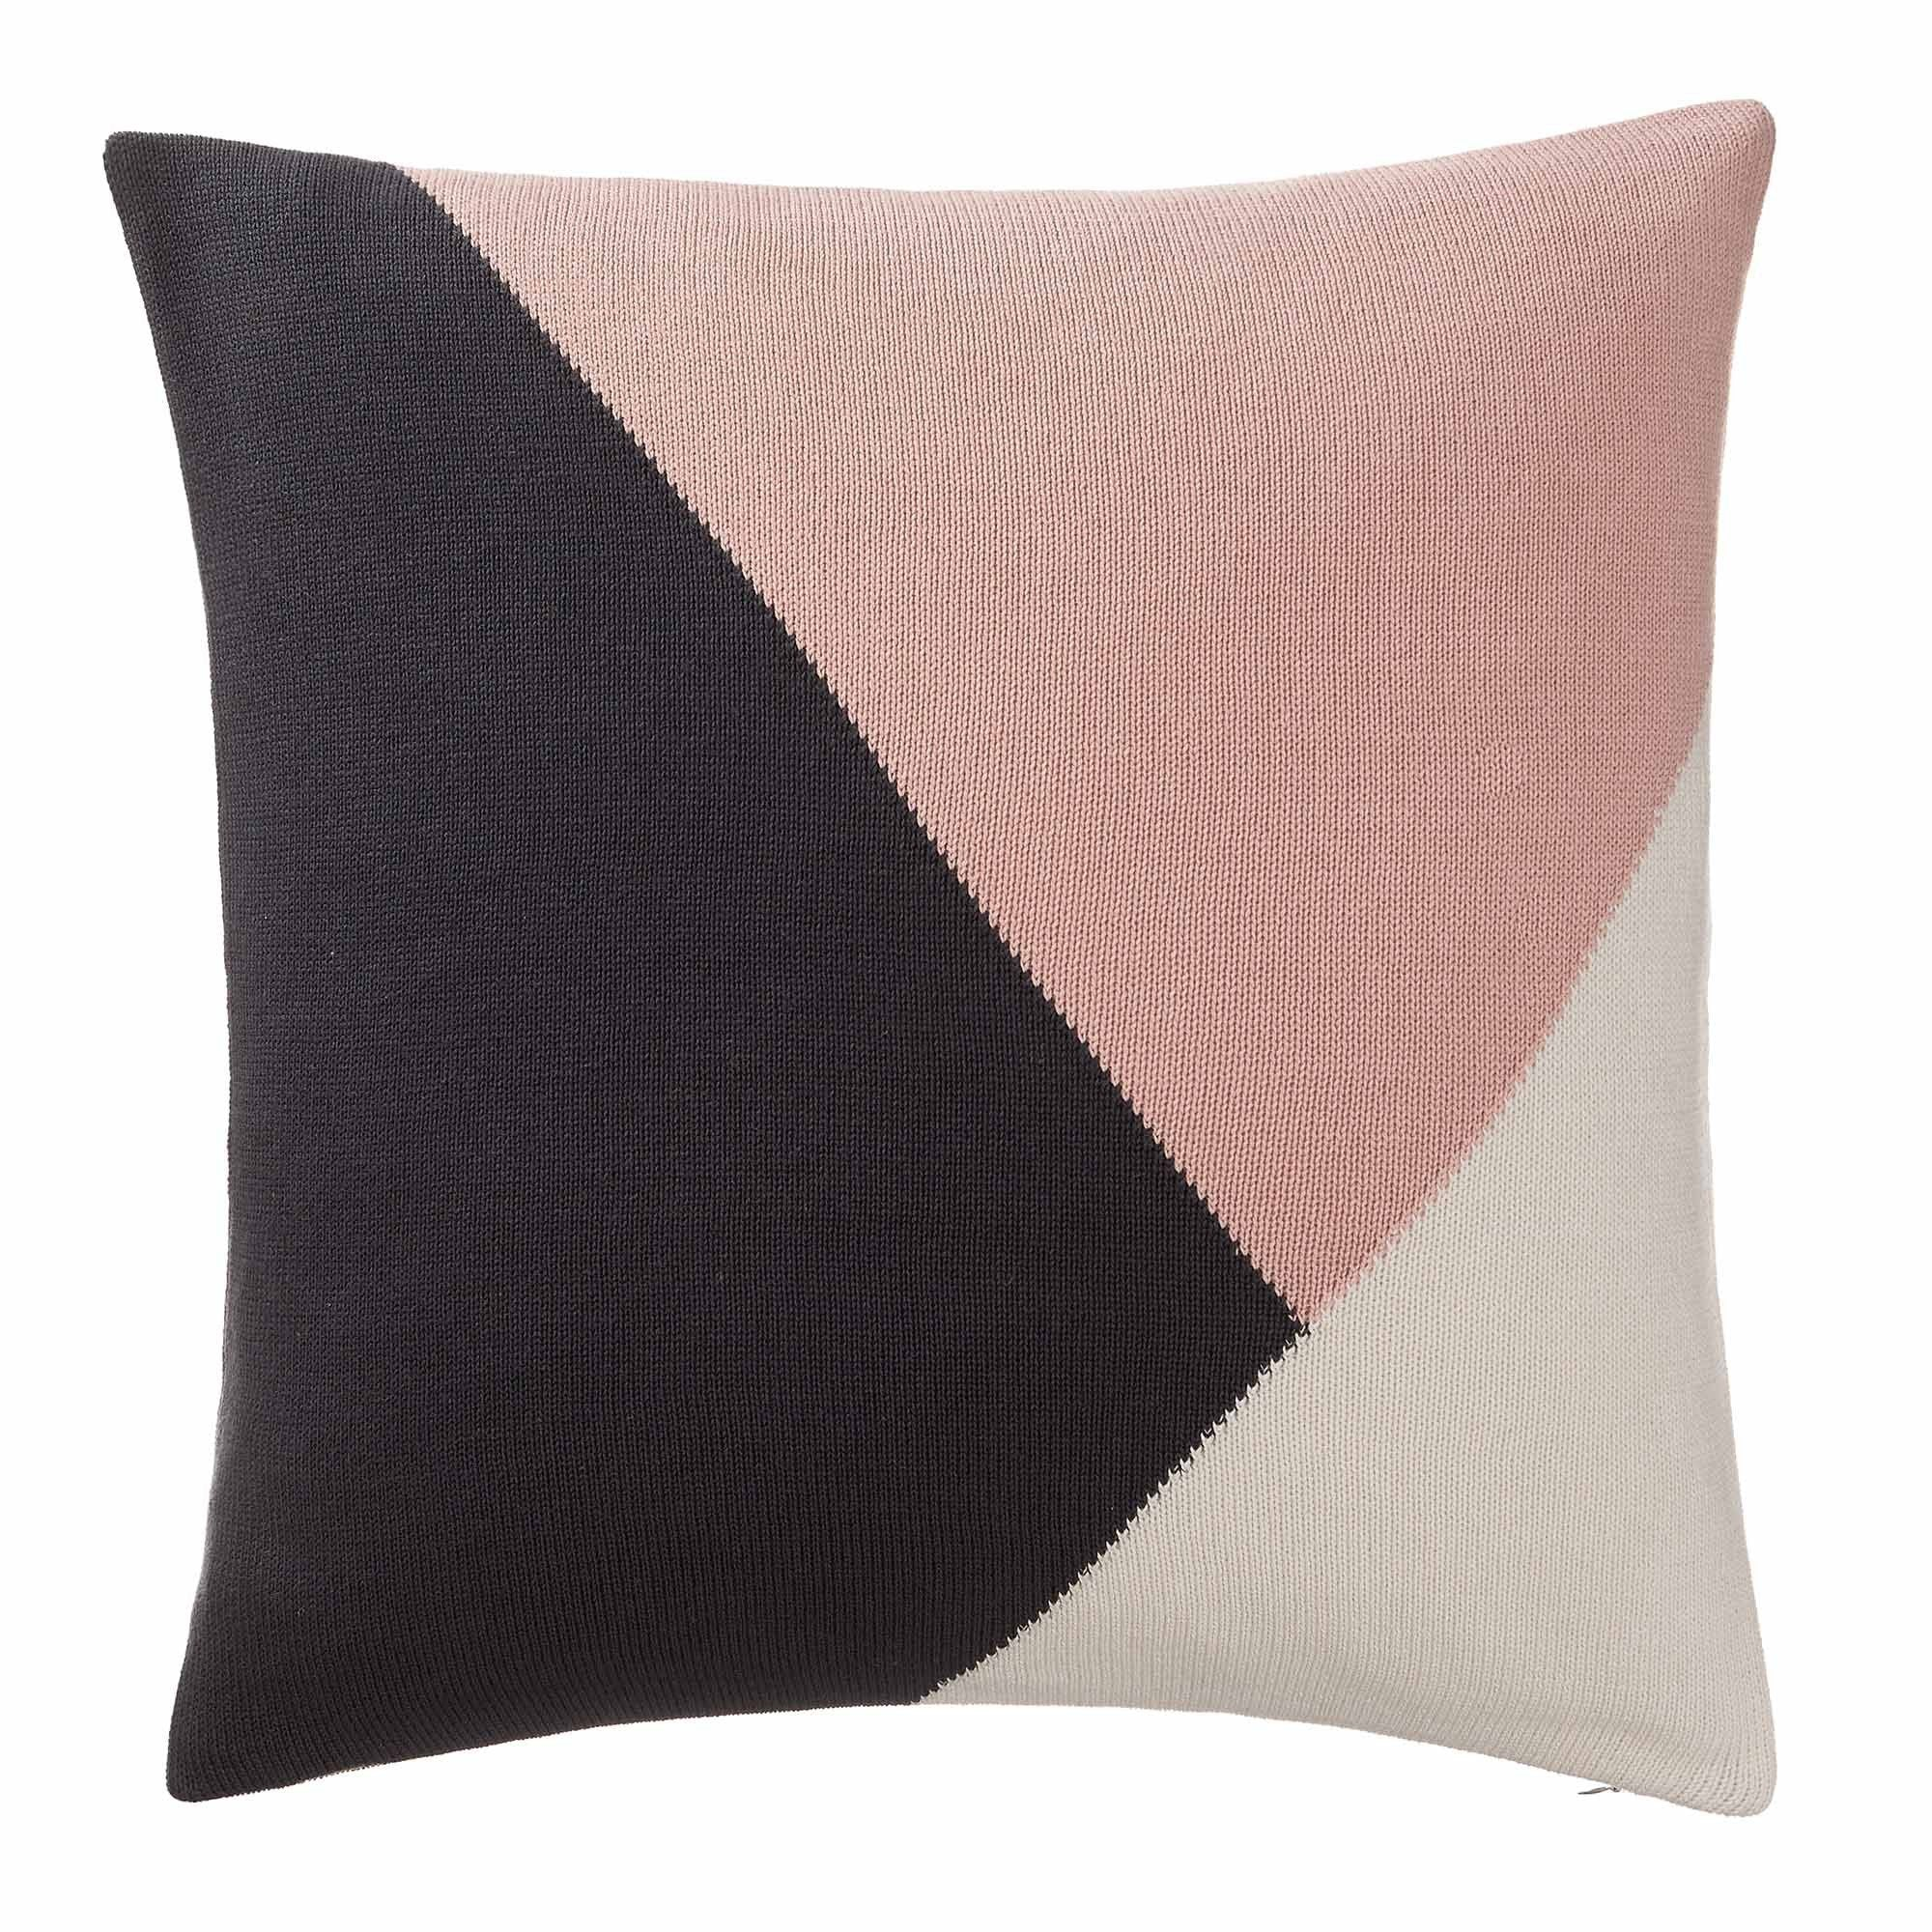 Kabral cushion cover, charcoal & light pink & natural white, 100% cotton